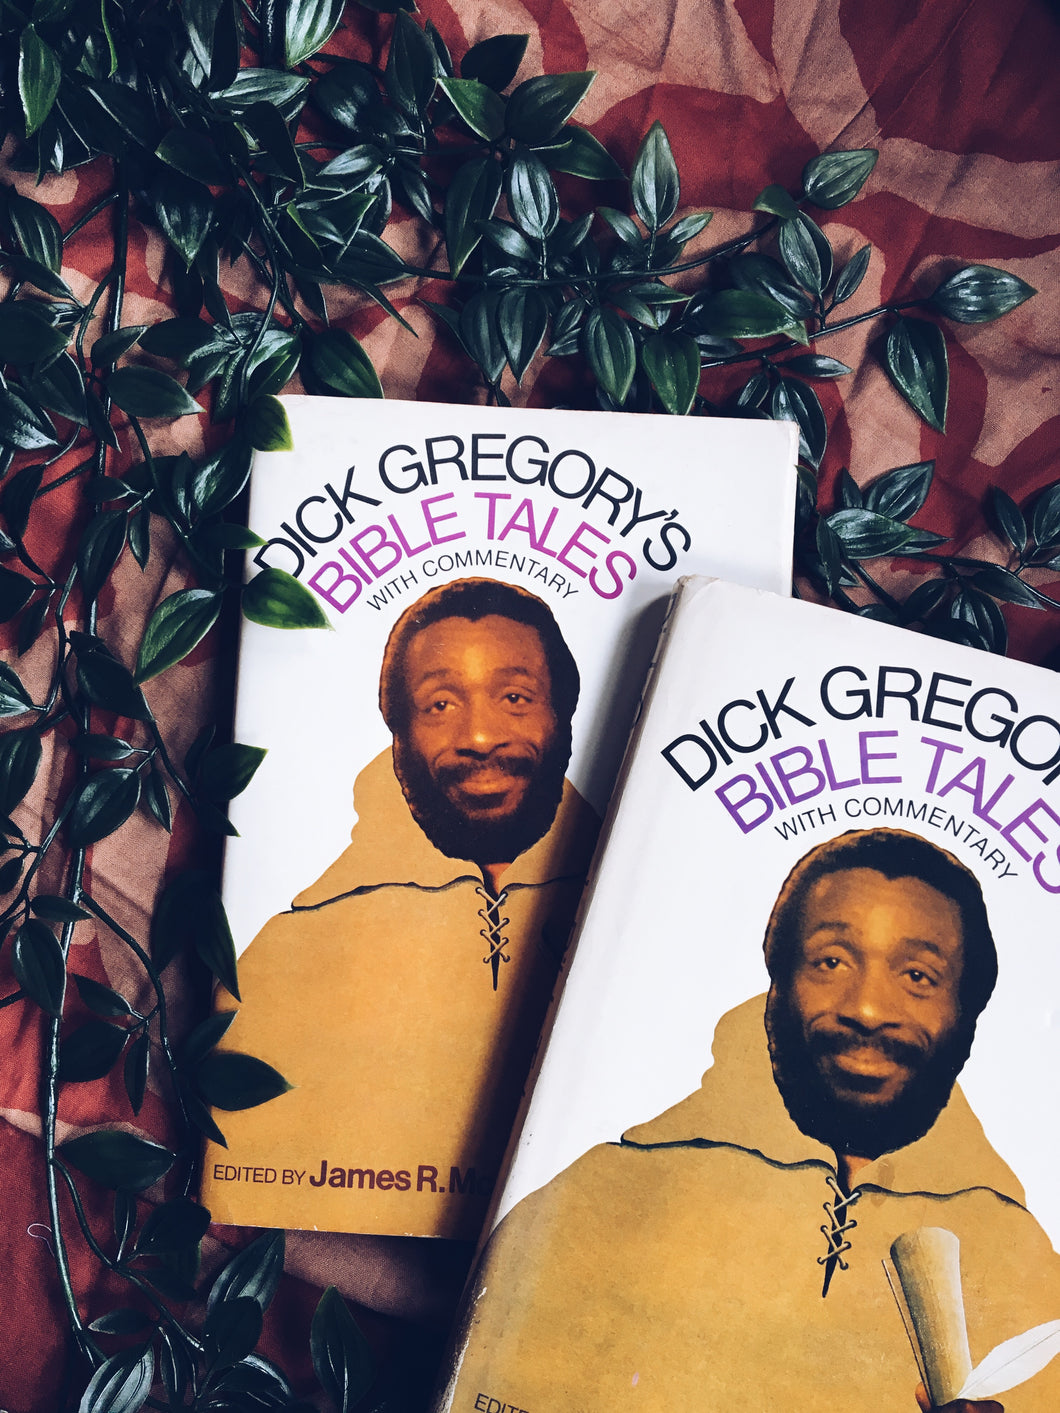 Dick Gregory's Bible Tales by Dick Gregory (First Edition, 1974)